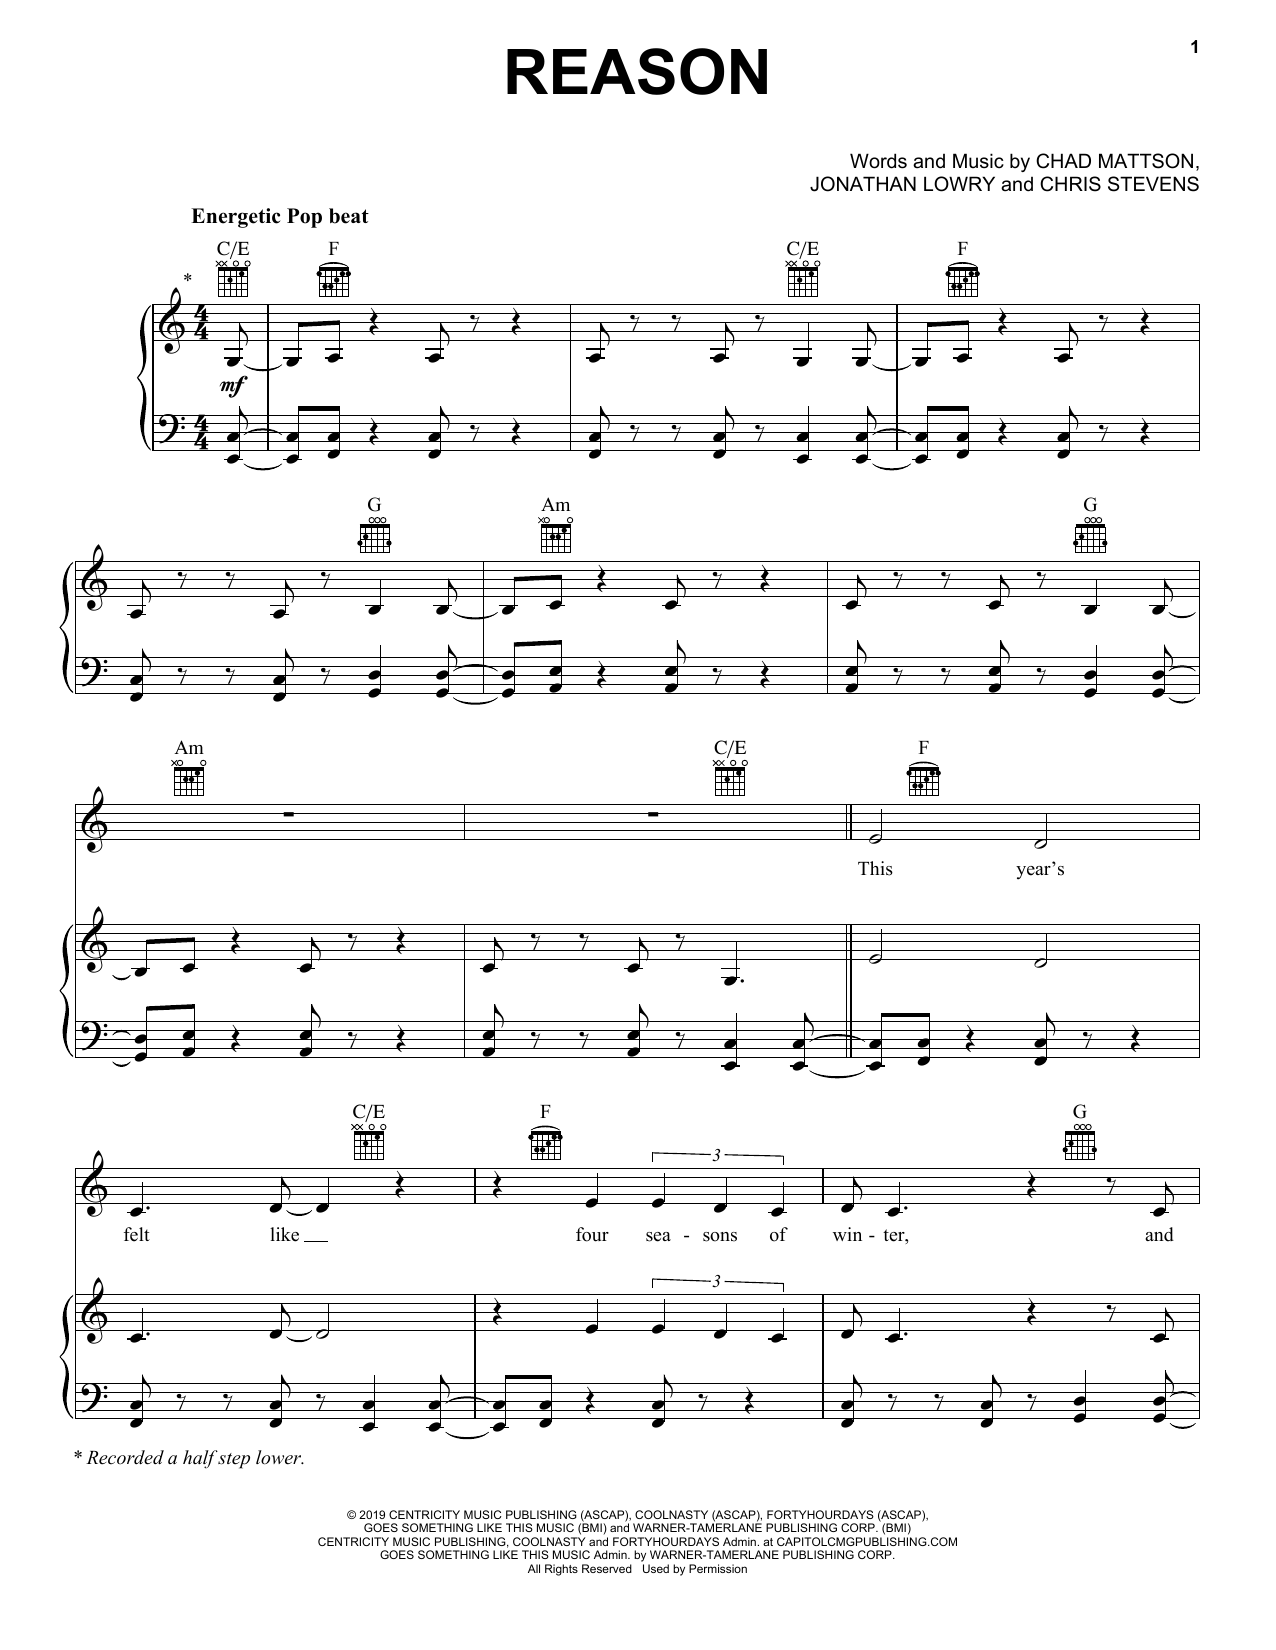 Unspoken Reason sheet music notes and chords